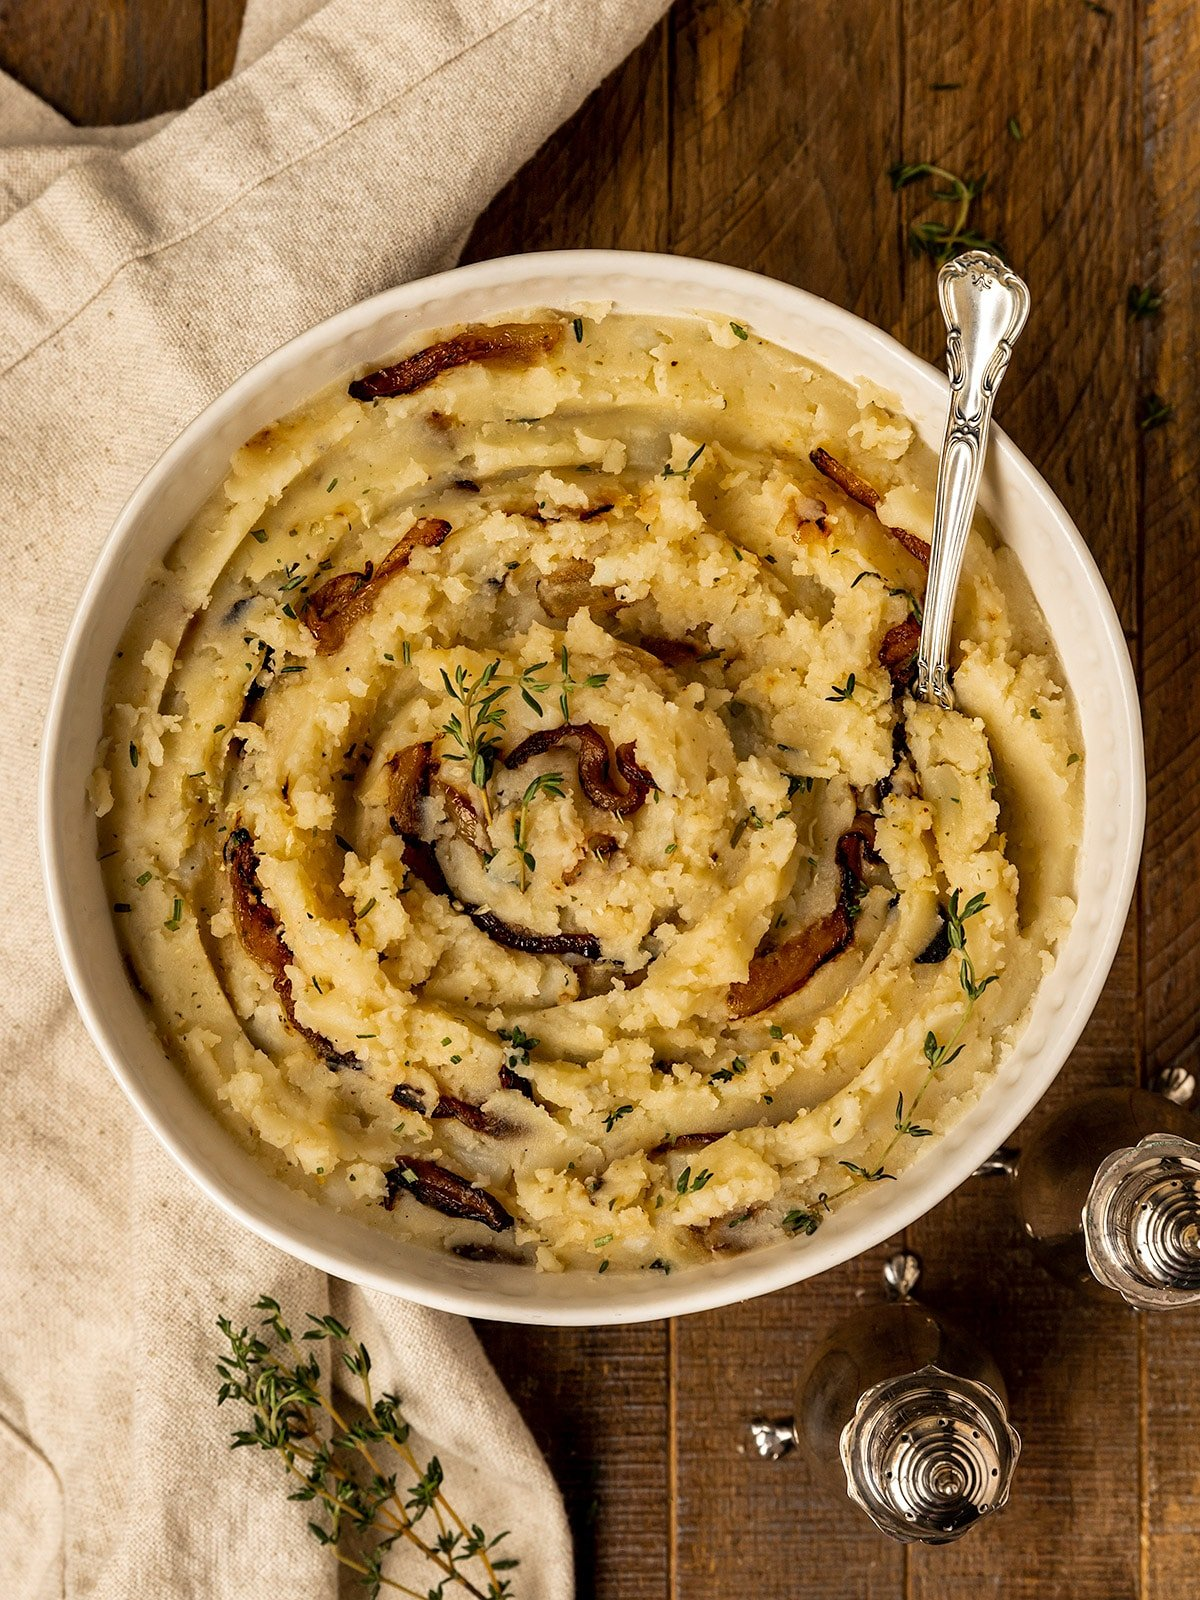 bowl containing mashed potatoes with caramelized onions and fresh thyme with side of salt & pepper shakers